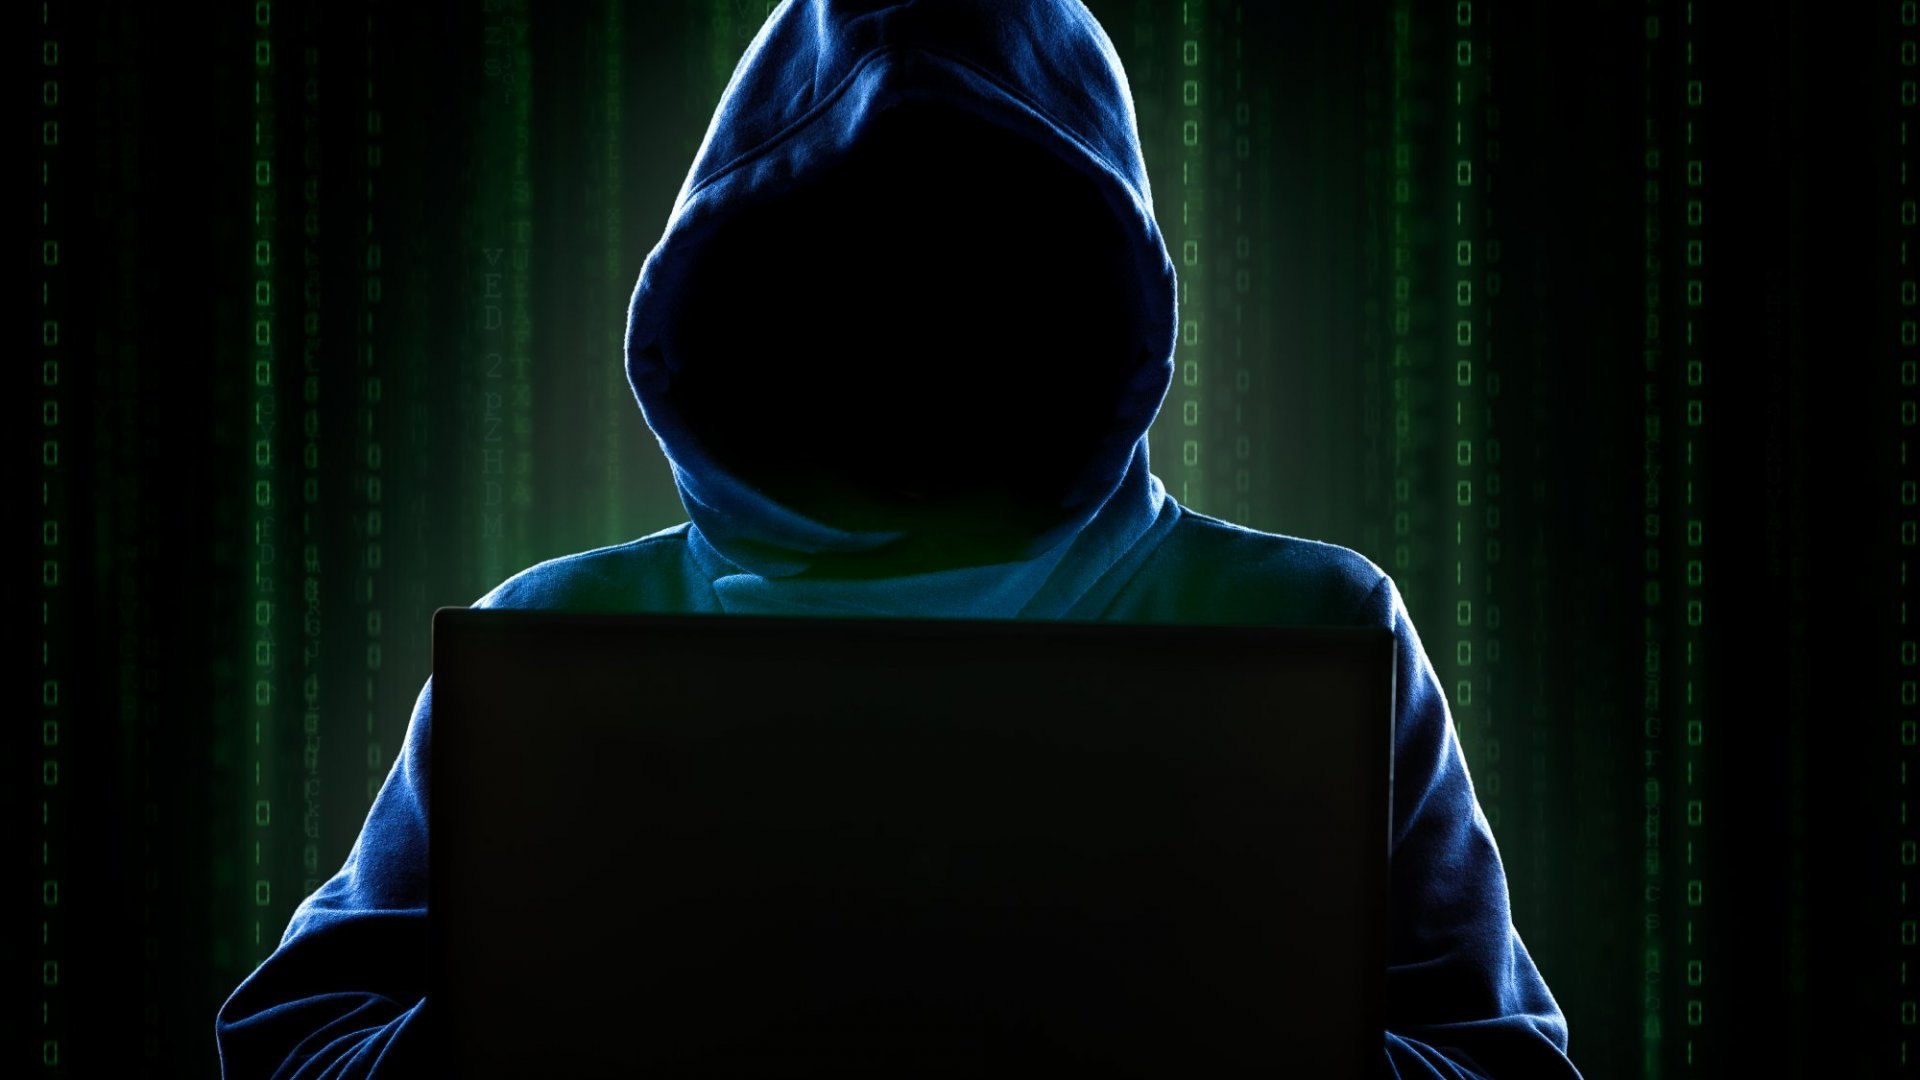 Cybercrime Expected to Surpass $6 Trillion Annually Within 5 Years